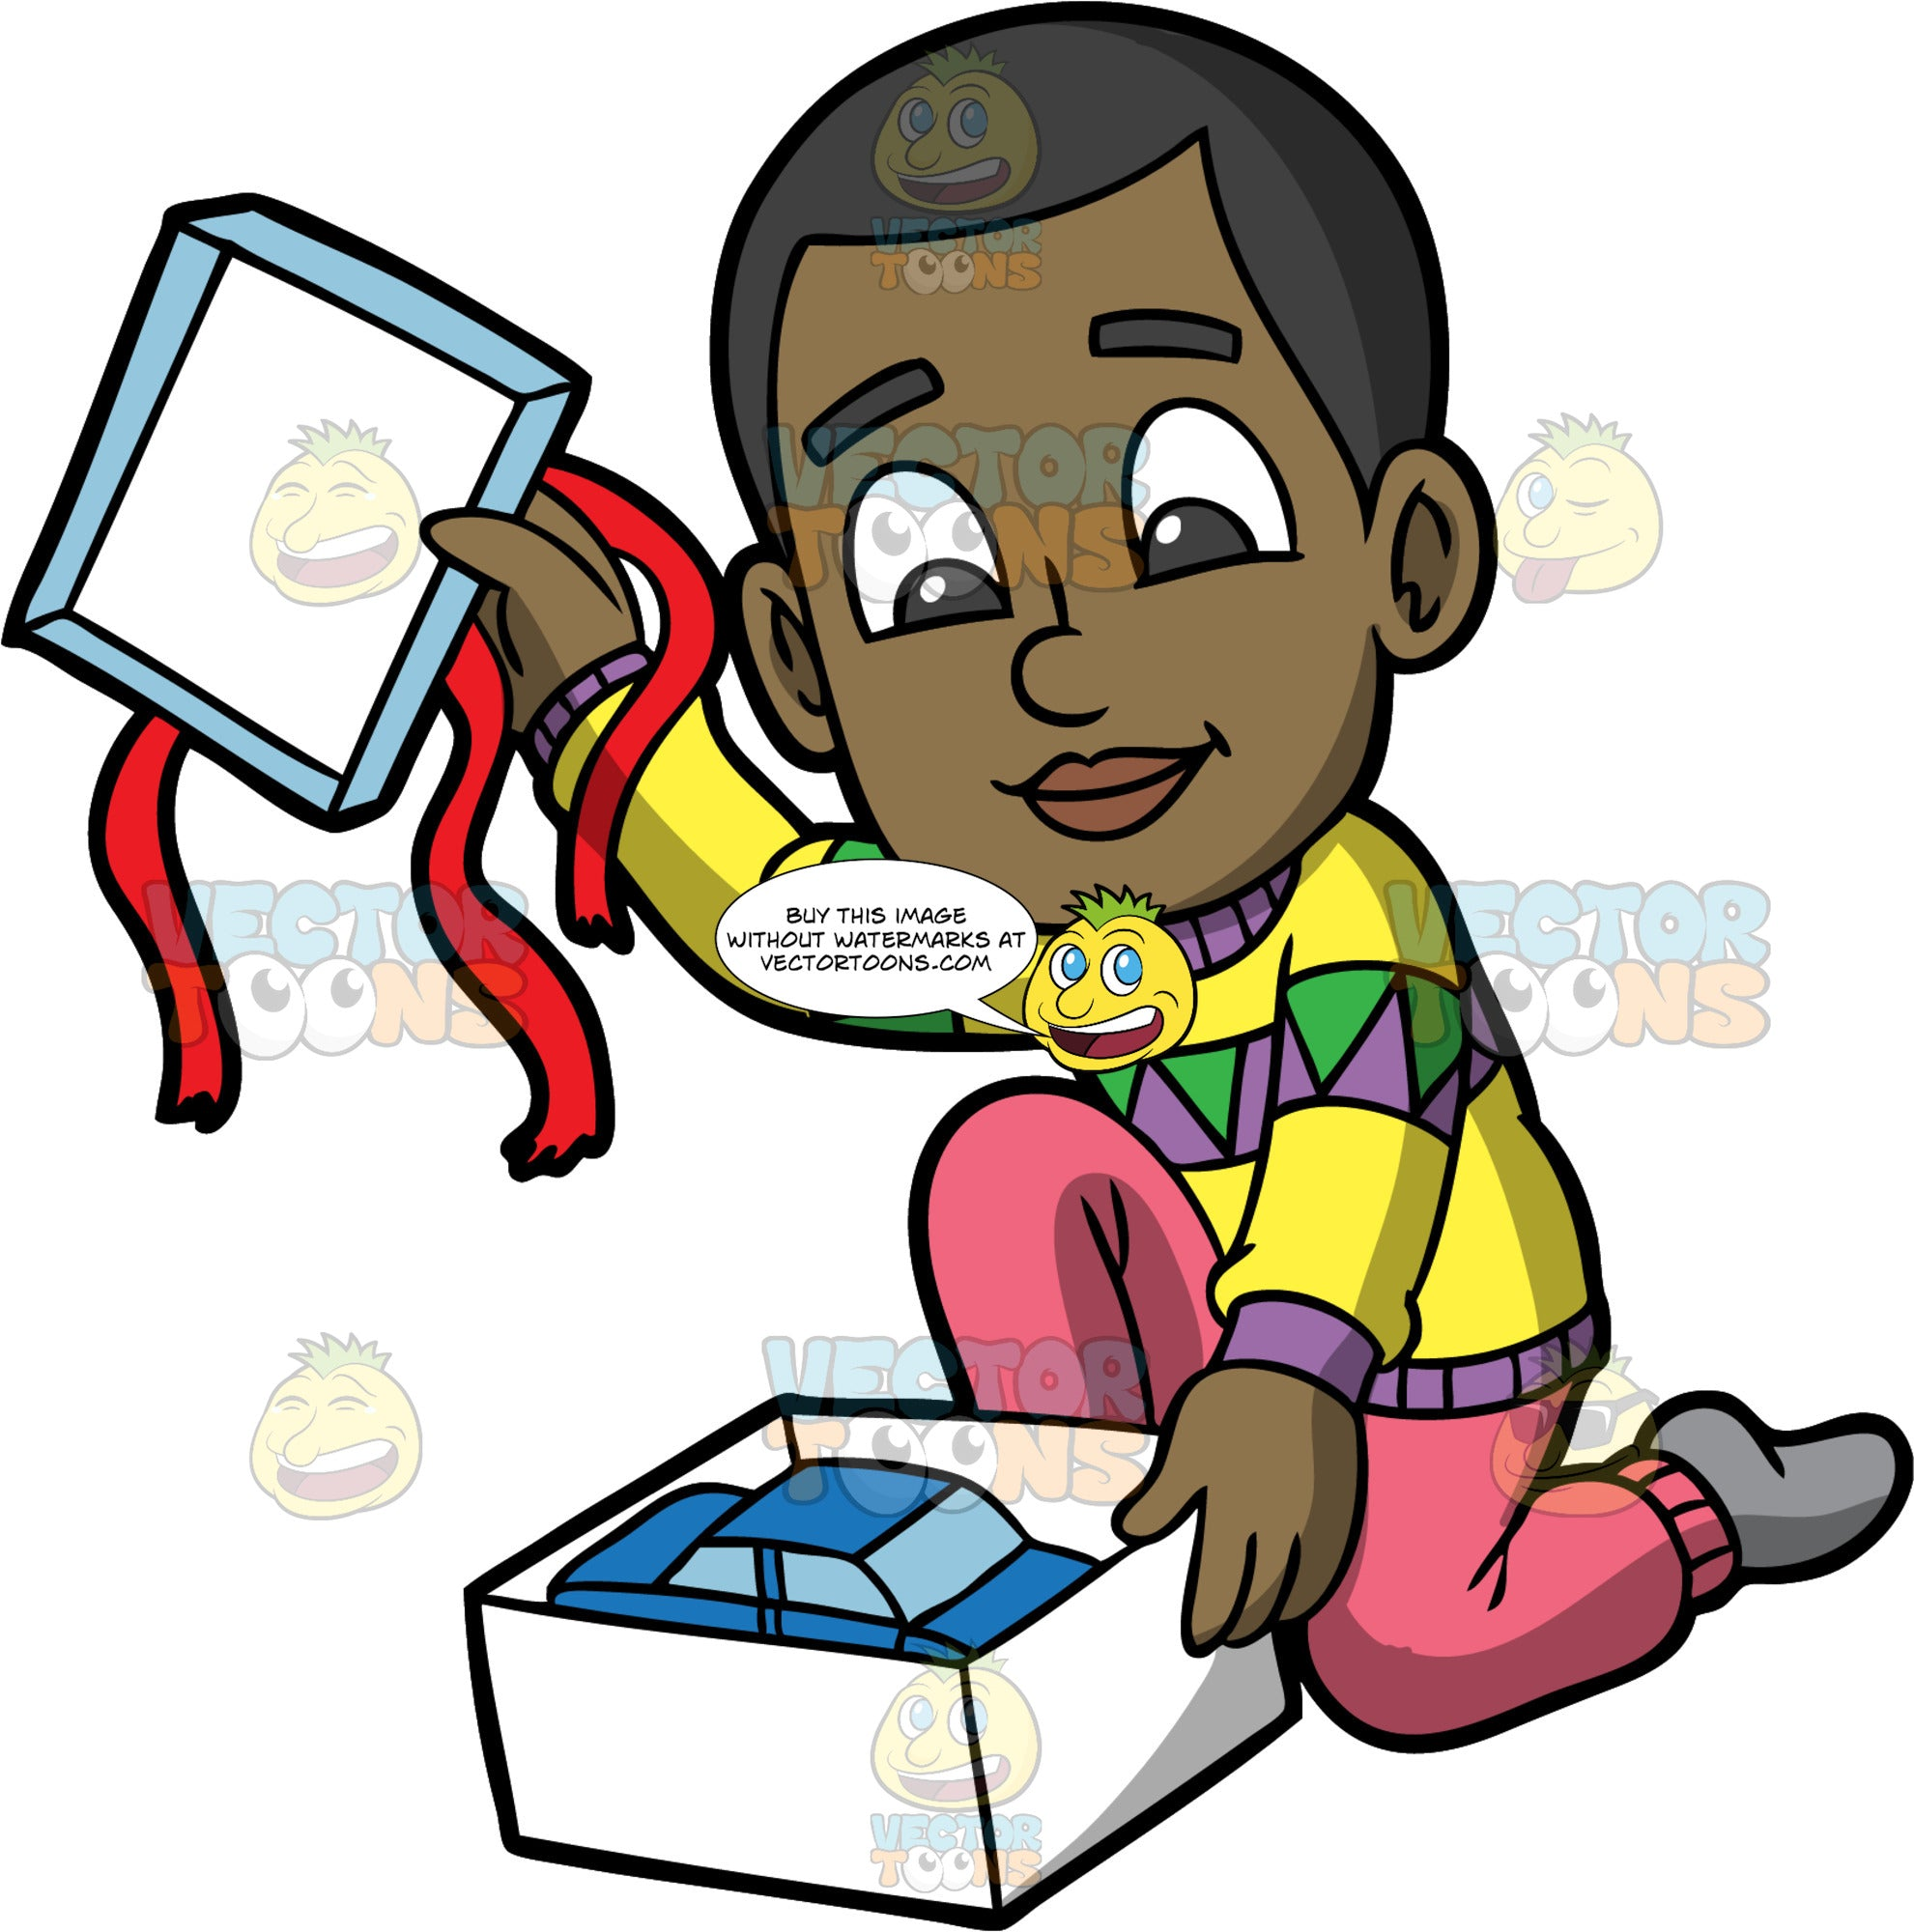 Young Calvin Opening A Gift Box. A black boy wearing pink pants, a yellow, purple and green sweater, and gray socks, kneeling down and taking the lid off a gift box to reveal a toy car inside